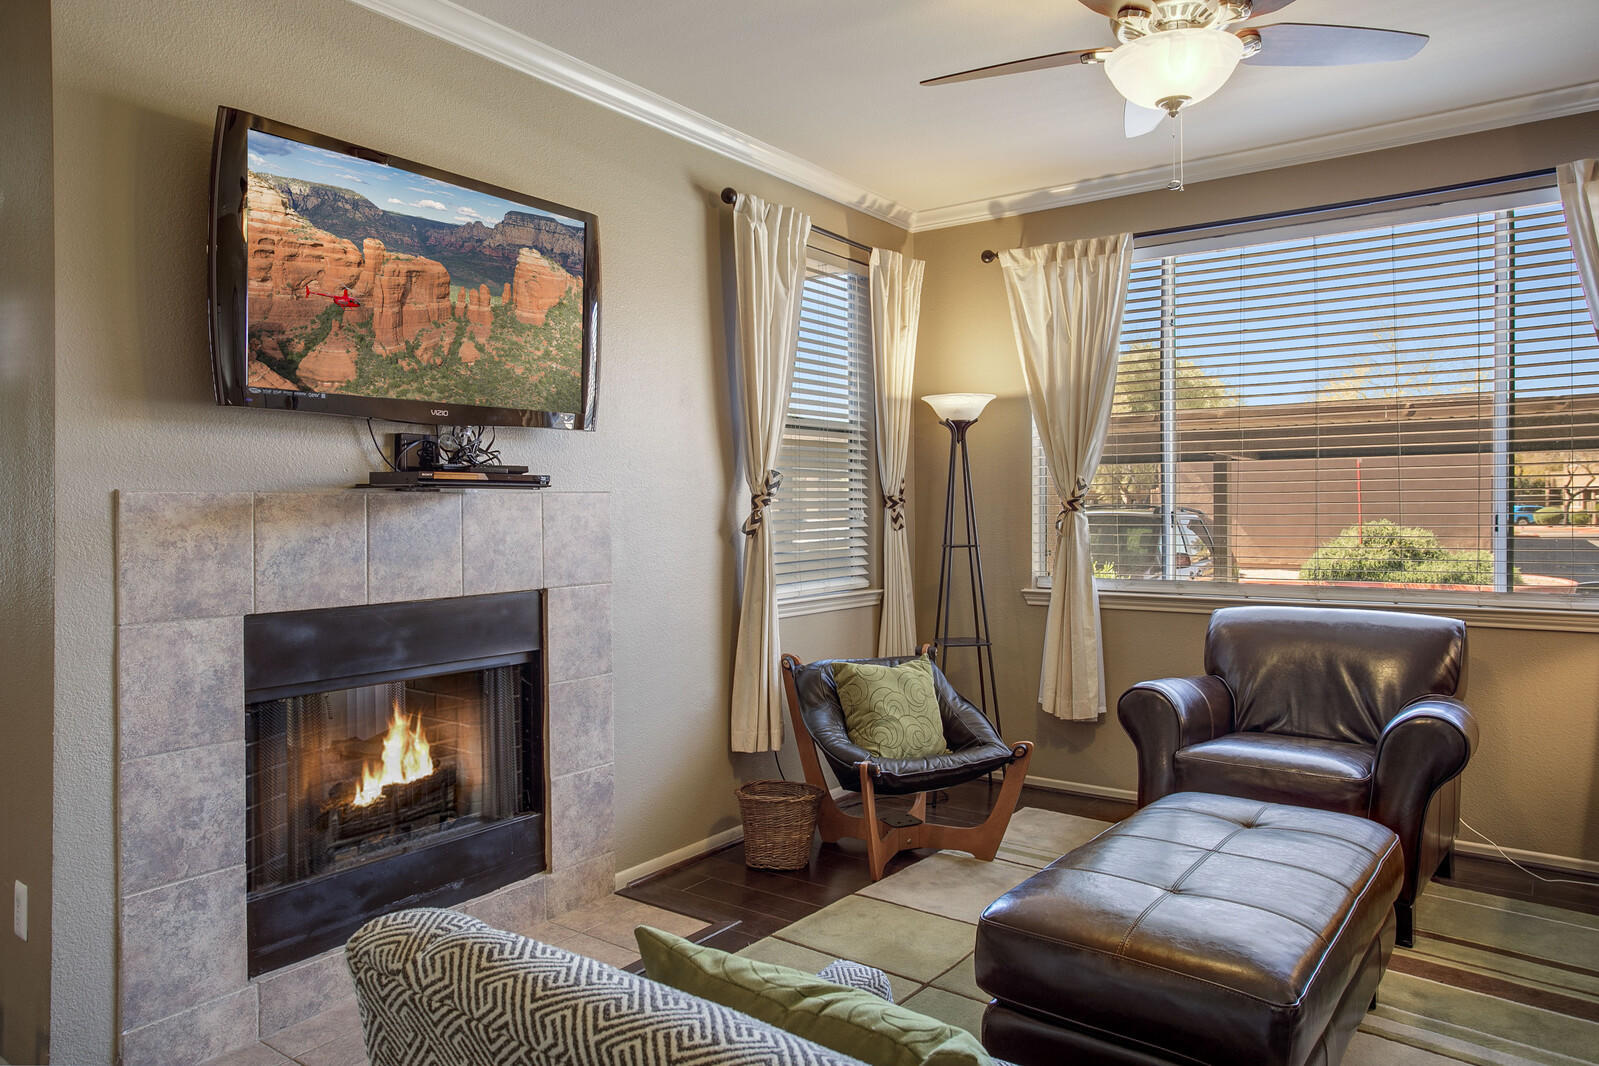 7009 E ACOMA Drive # 1137, Scottsdale, AZ 85254, 2 Bedrooms Bedrooms, ,Residential Lease,For Rent,7009 E ACOMA Drive # 1137,6217919